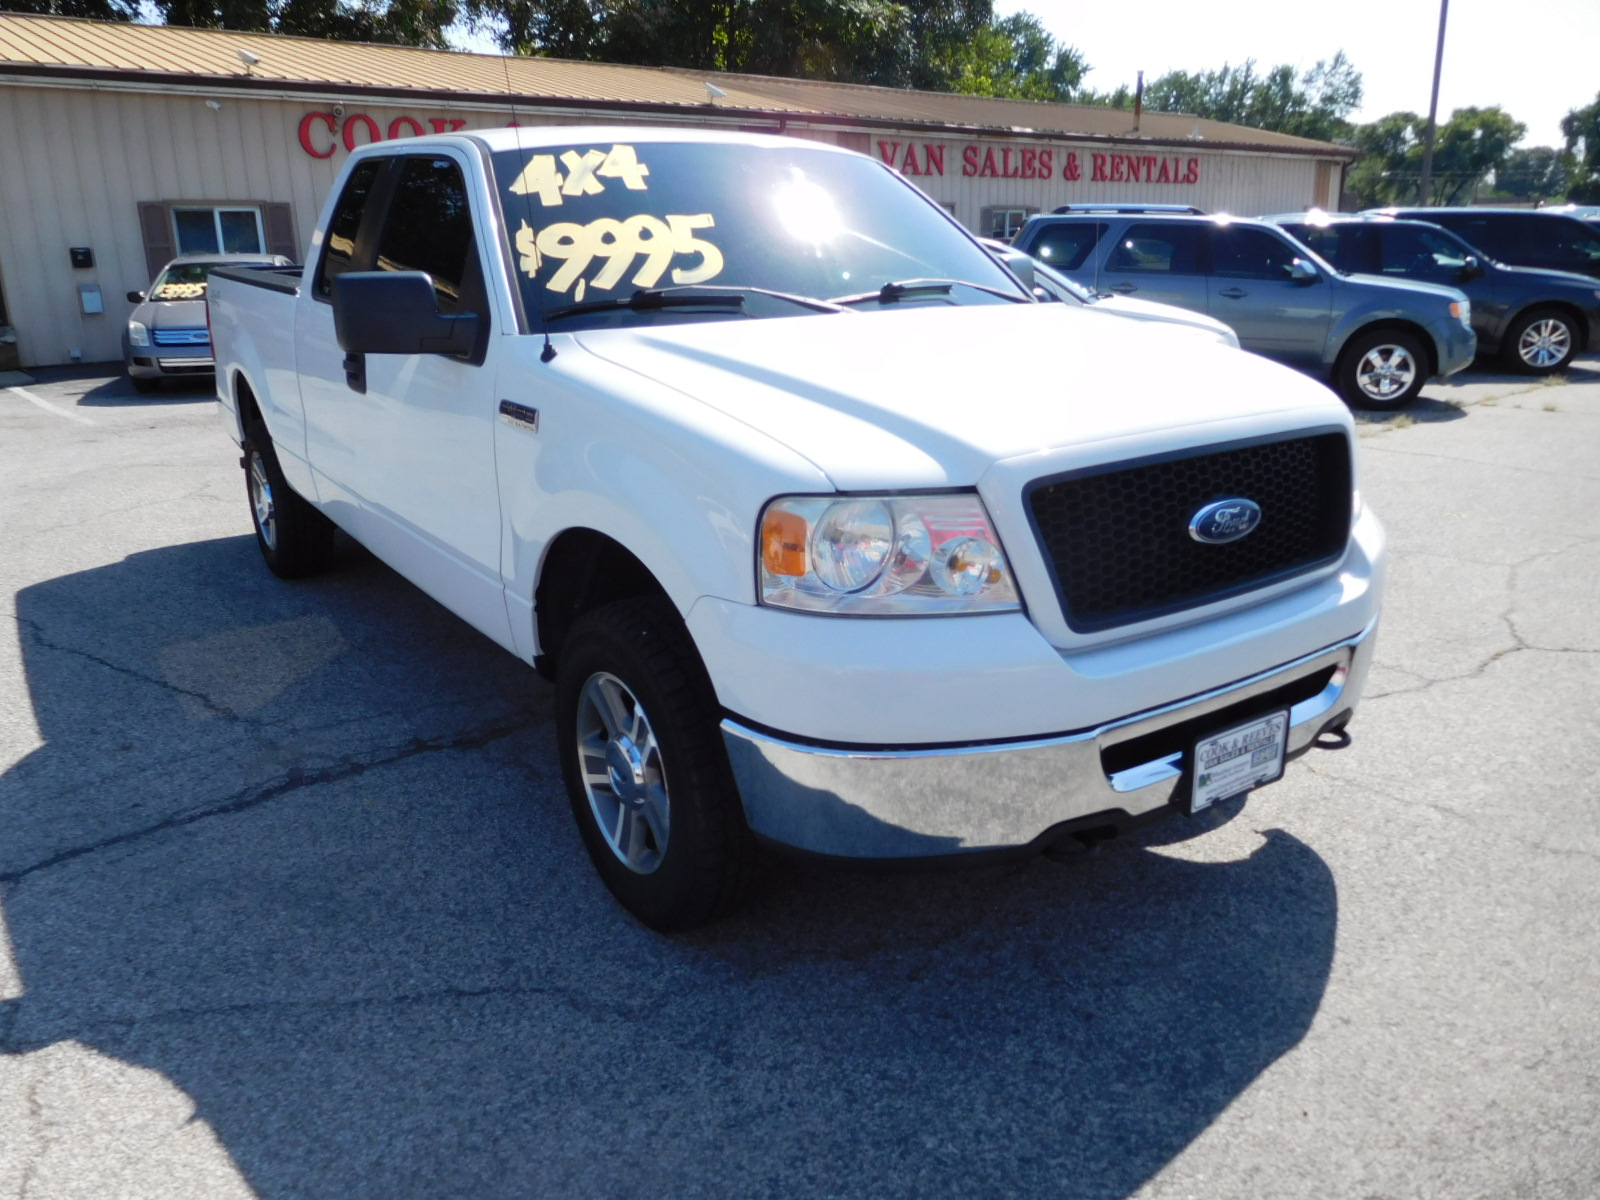 06 Ford F150 Super Cab XLT 4x4